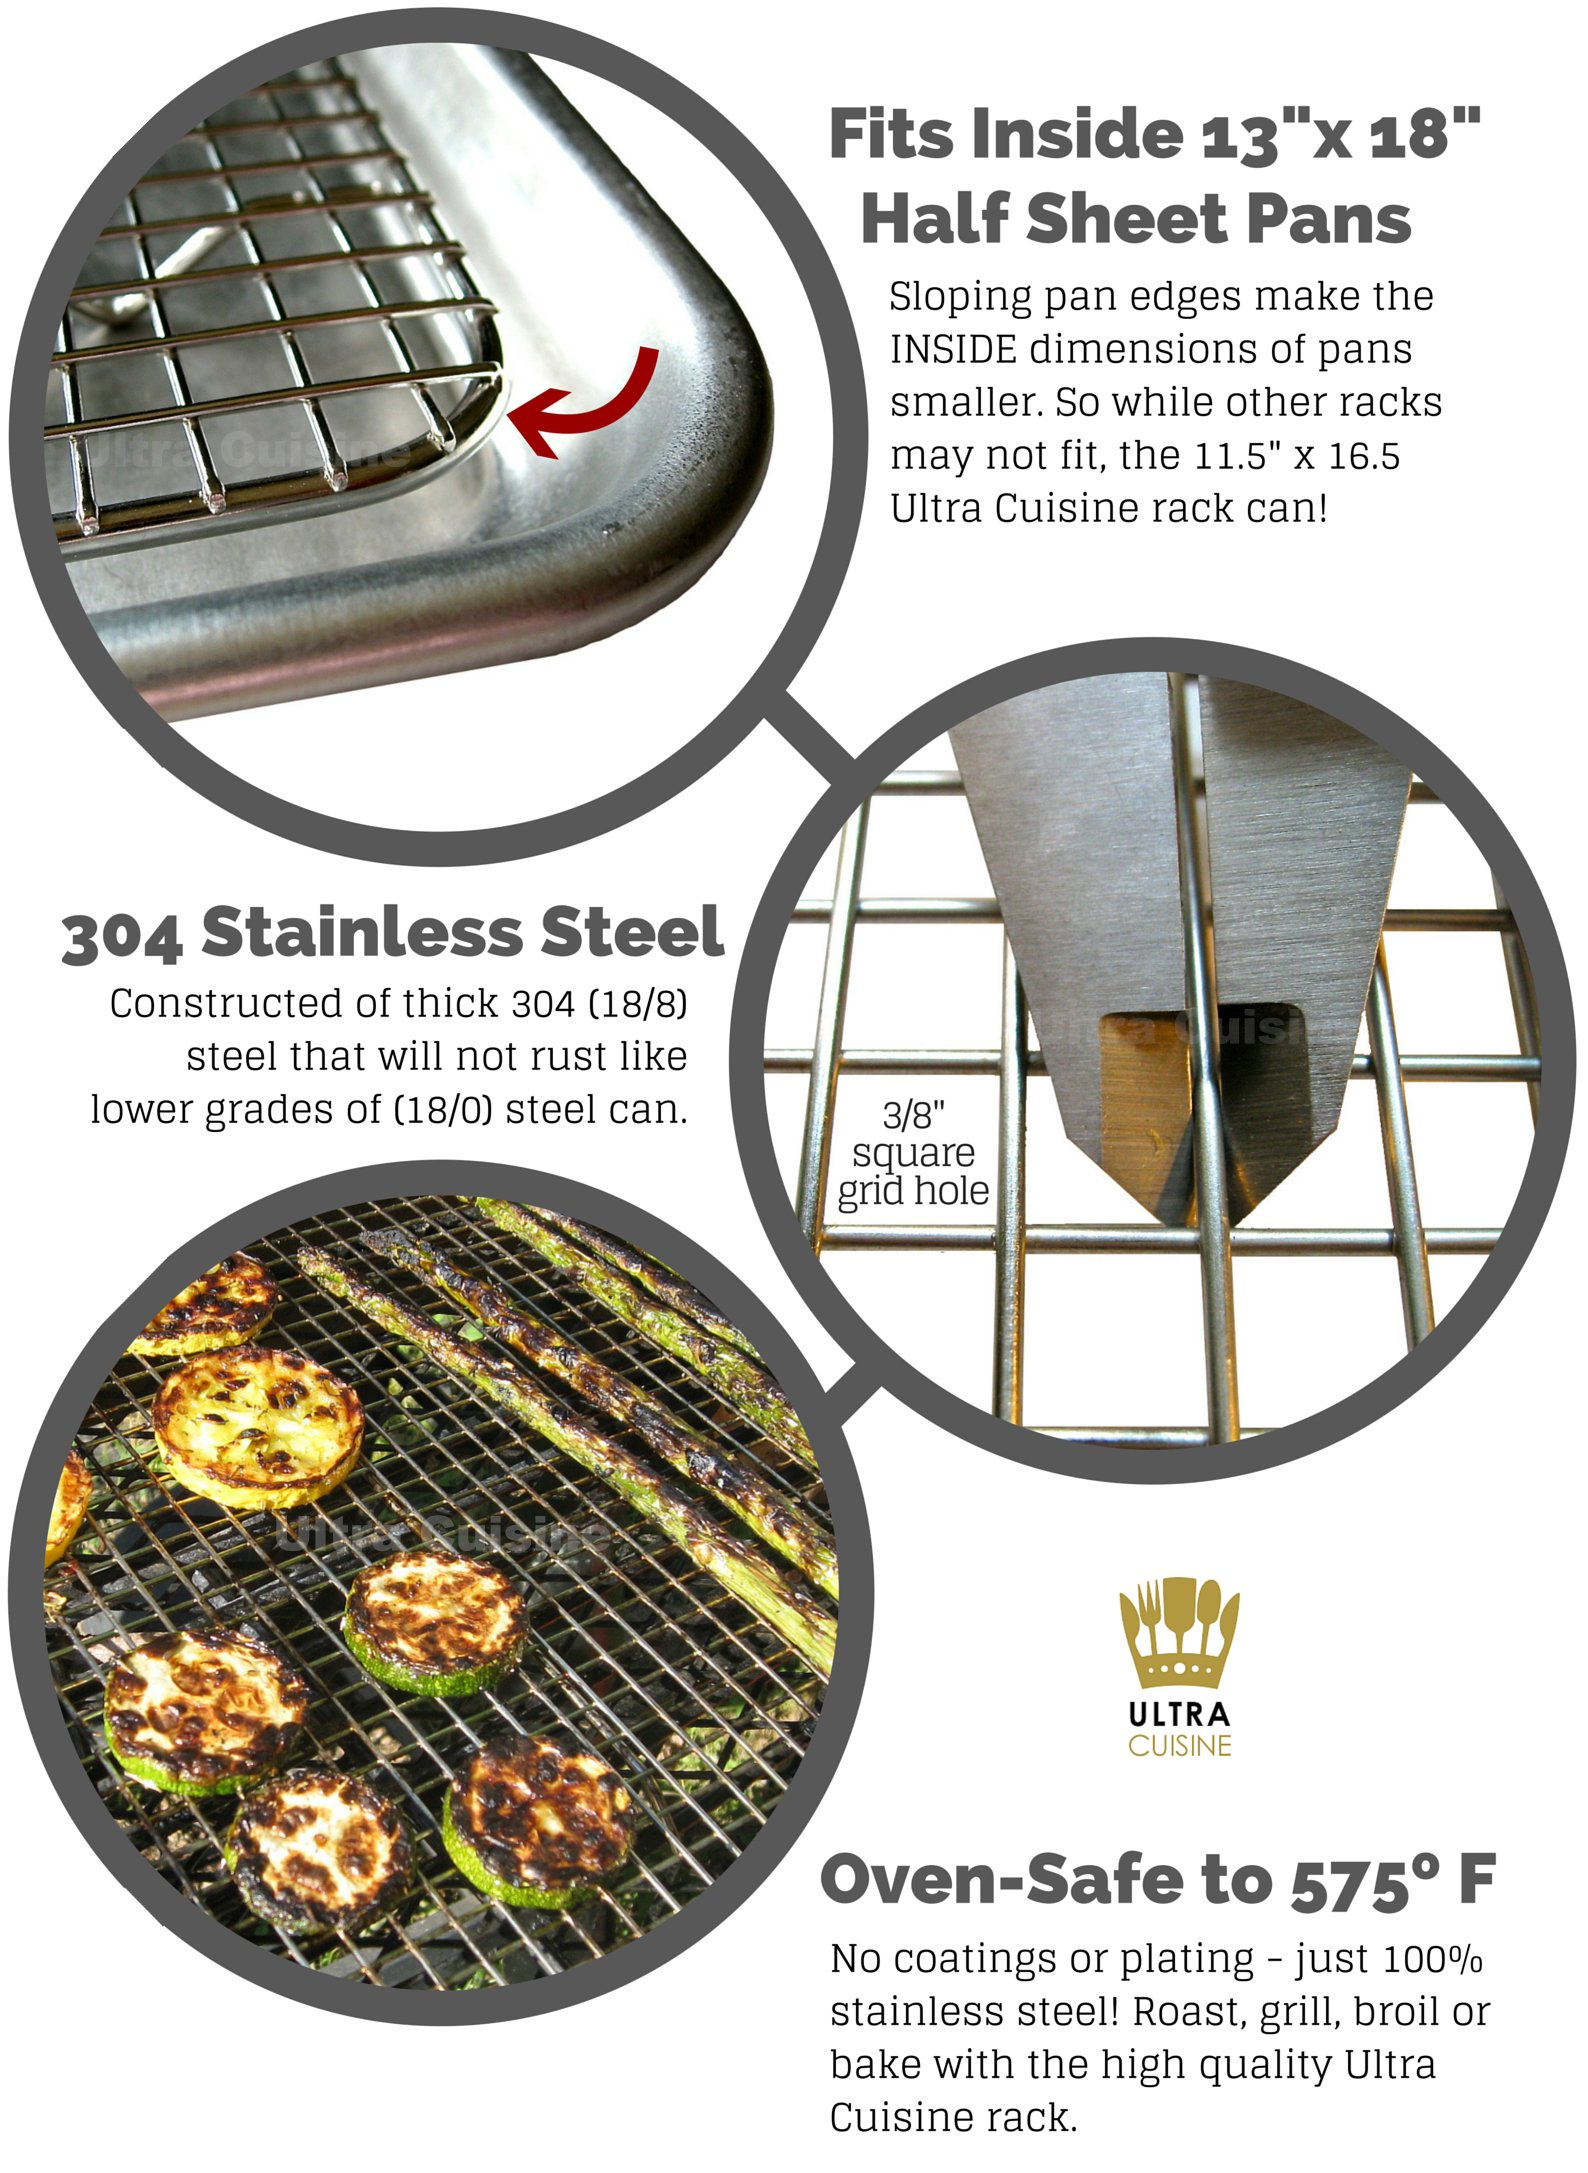 Ultra Cuisine 100% Stainless Steel Wire Cooling Rack for Baking fits Half Sheet Pans  Cool Cookies, Cakes, Breads - Oven Safe for Cooking, Roasting, Grilling - Heavy Duty Commercial Quality by Ultra Cuisine (Image #2)